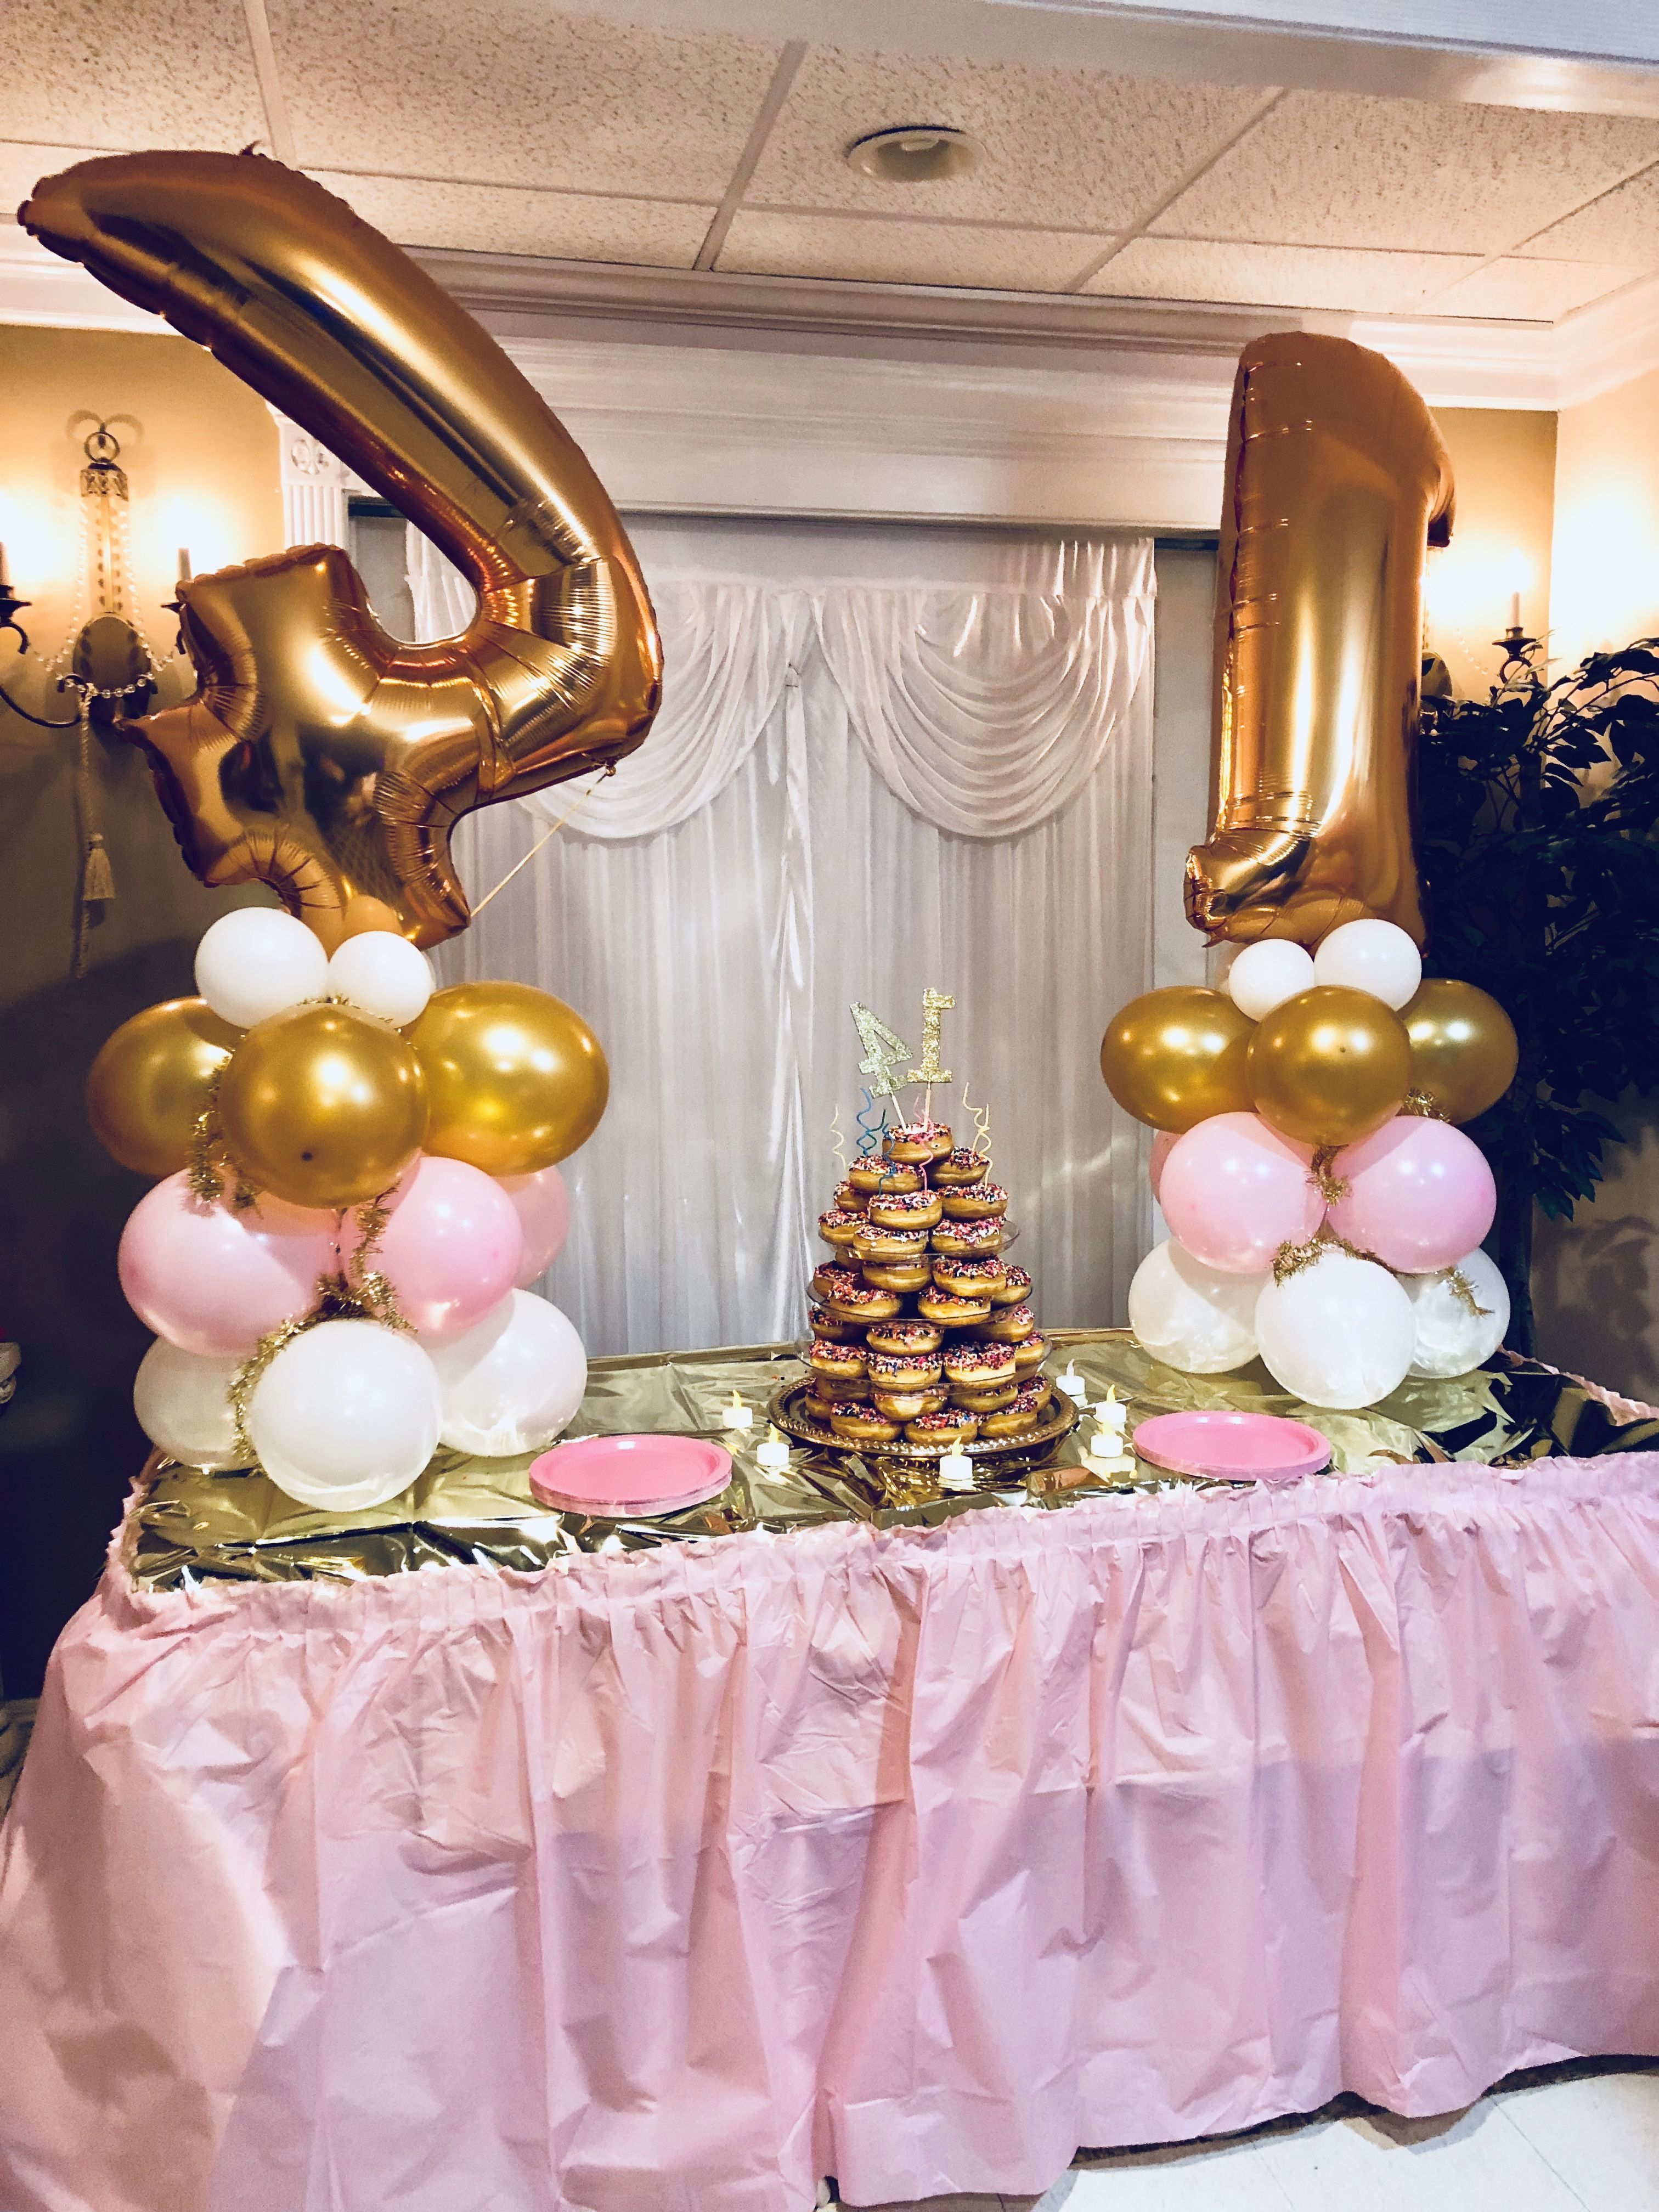 Download Beautiful Of Quad Birthday Party Decorations 14th Birthday Party Ideas 14th Birthday Party Teenage Birthday Party